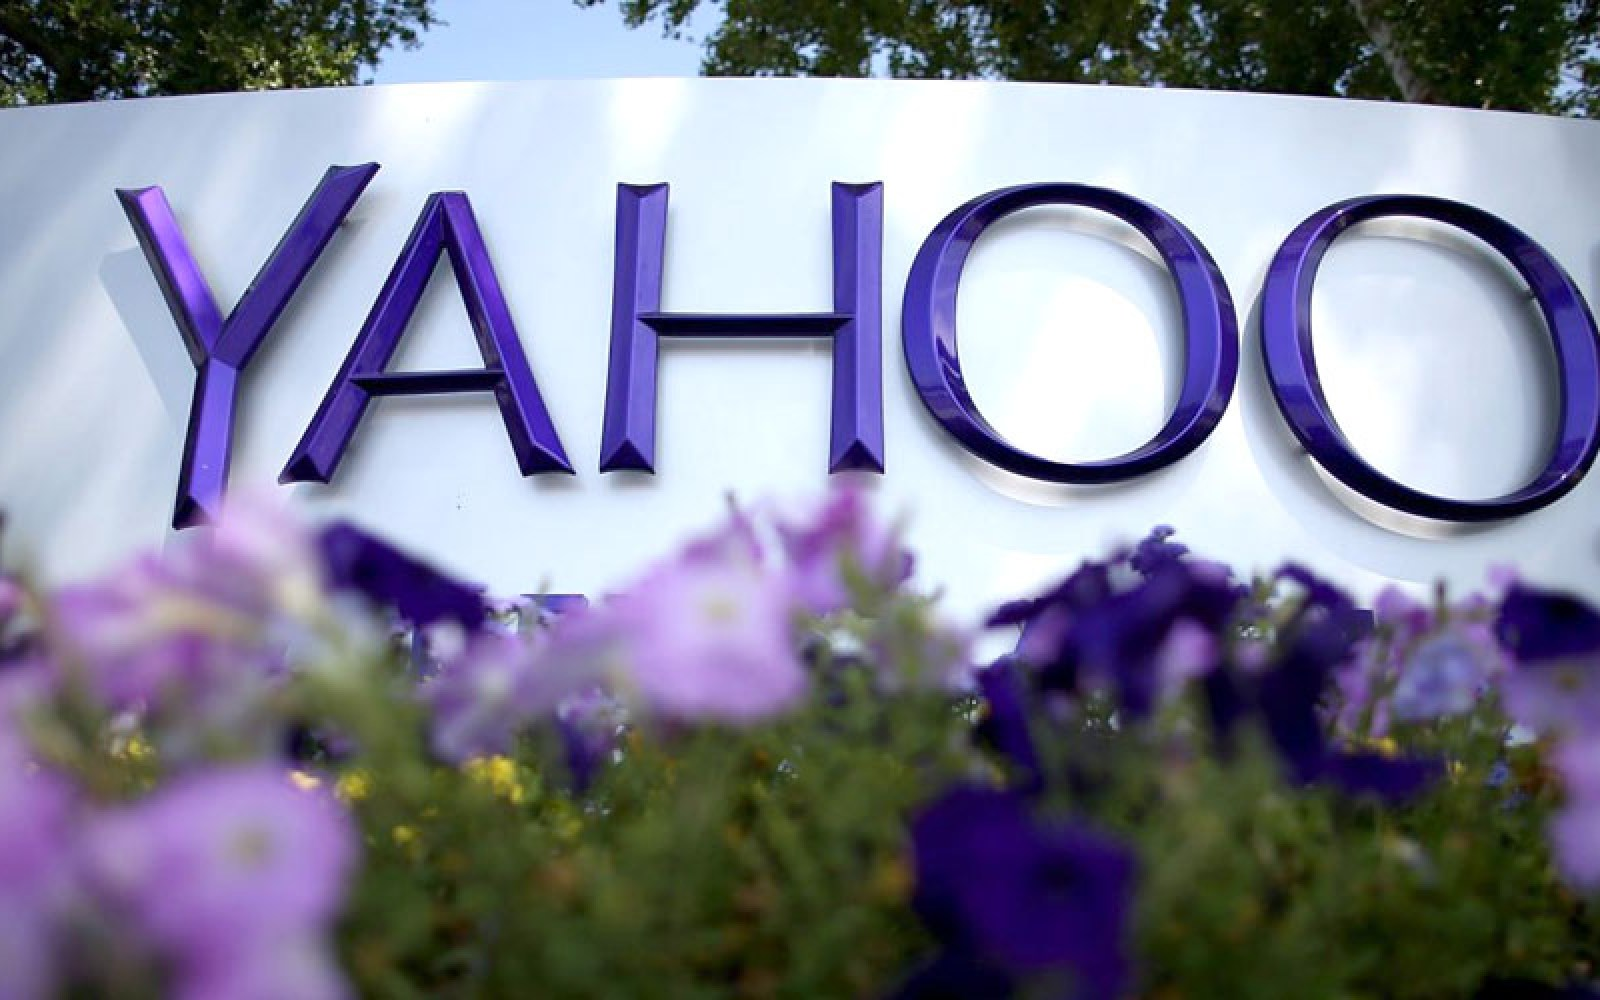 After Verizon acquisition, Yahoo will change its name to 'Altaba' and Marissa Mayer will step down